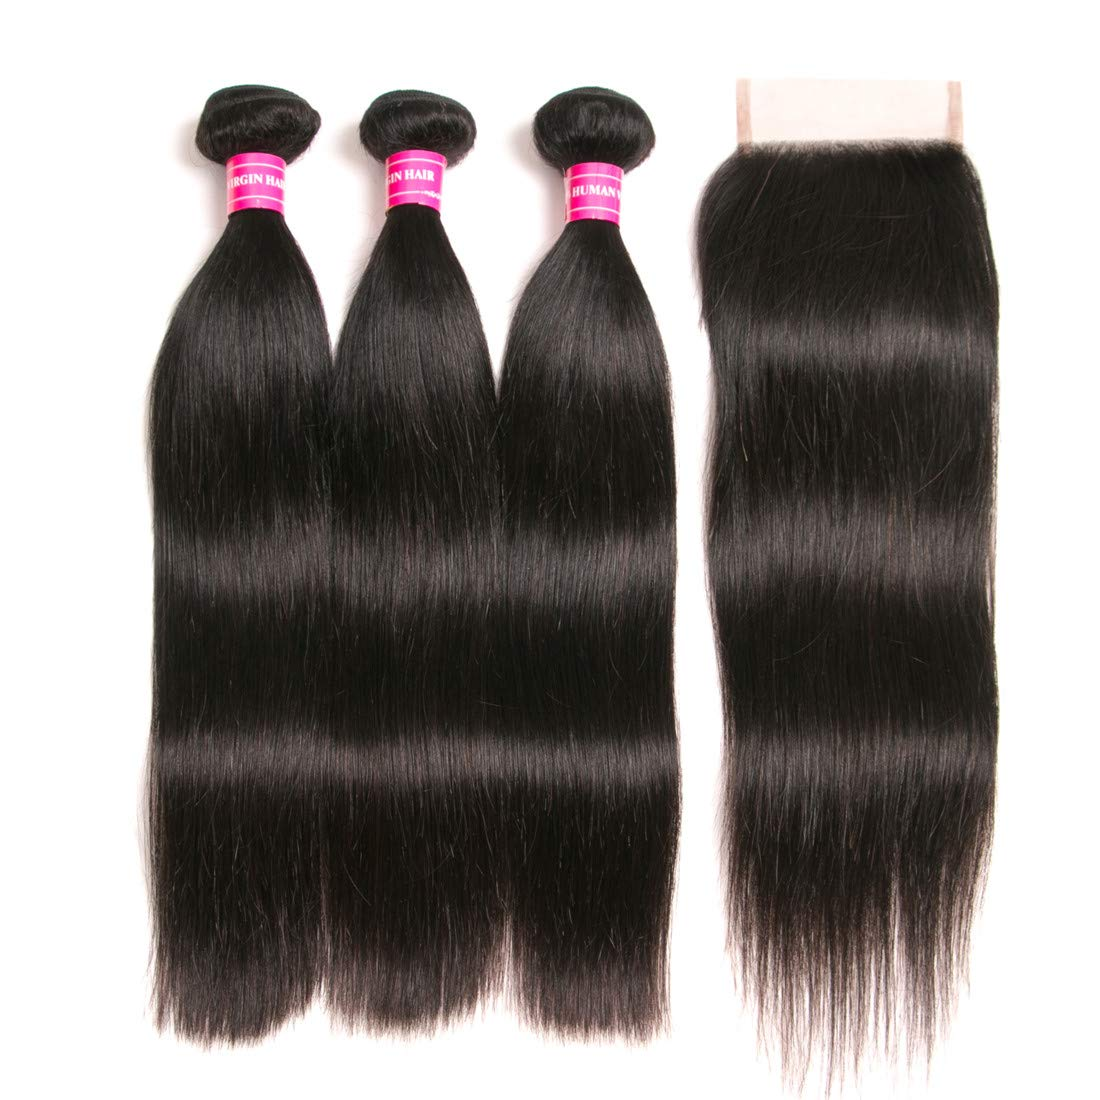 Brazilian Straight Hair With Closure 3 Bundles Unprocessed Virgin Human Hair Bundles With Lace Closure Free Part Hair Extensions Natural Color(12 14 16+10)